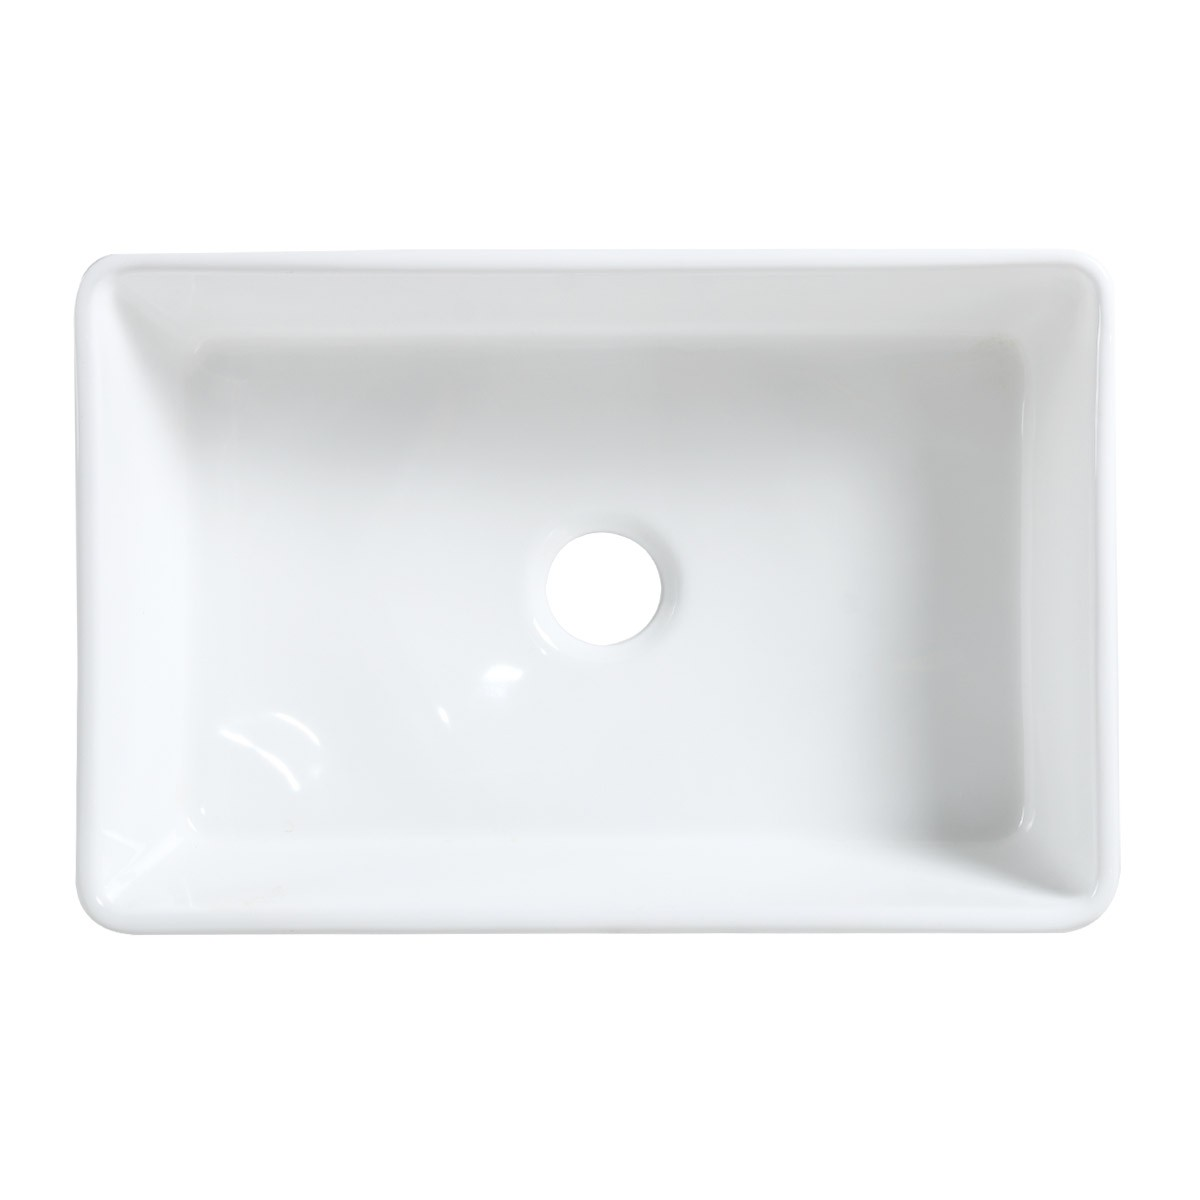 Renovators Supply 30 Farmhouse Kitchen Sink White Glossy Finish With Drain 30 Inch Farmhouse Farm House Kitchen Sink Rectangular Drop In Recessed Apron Front Counter Top High Quality Single Basin